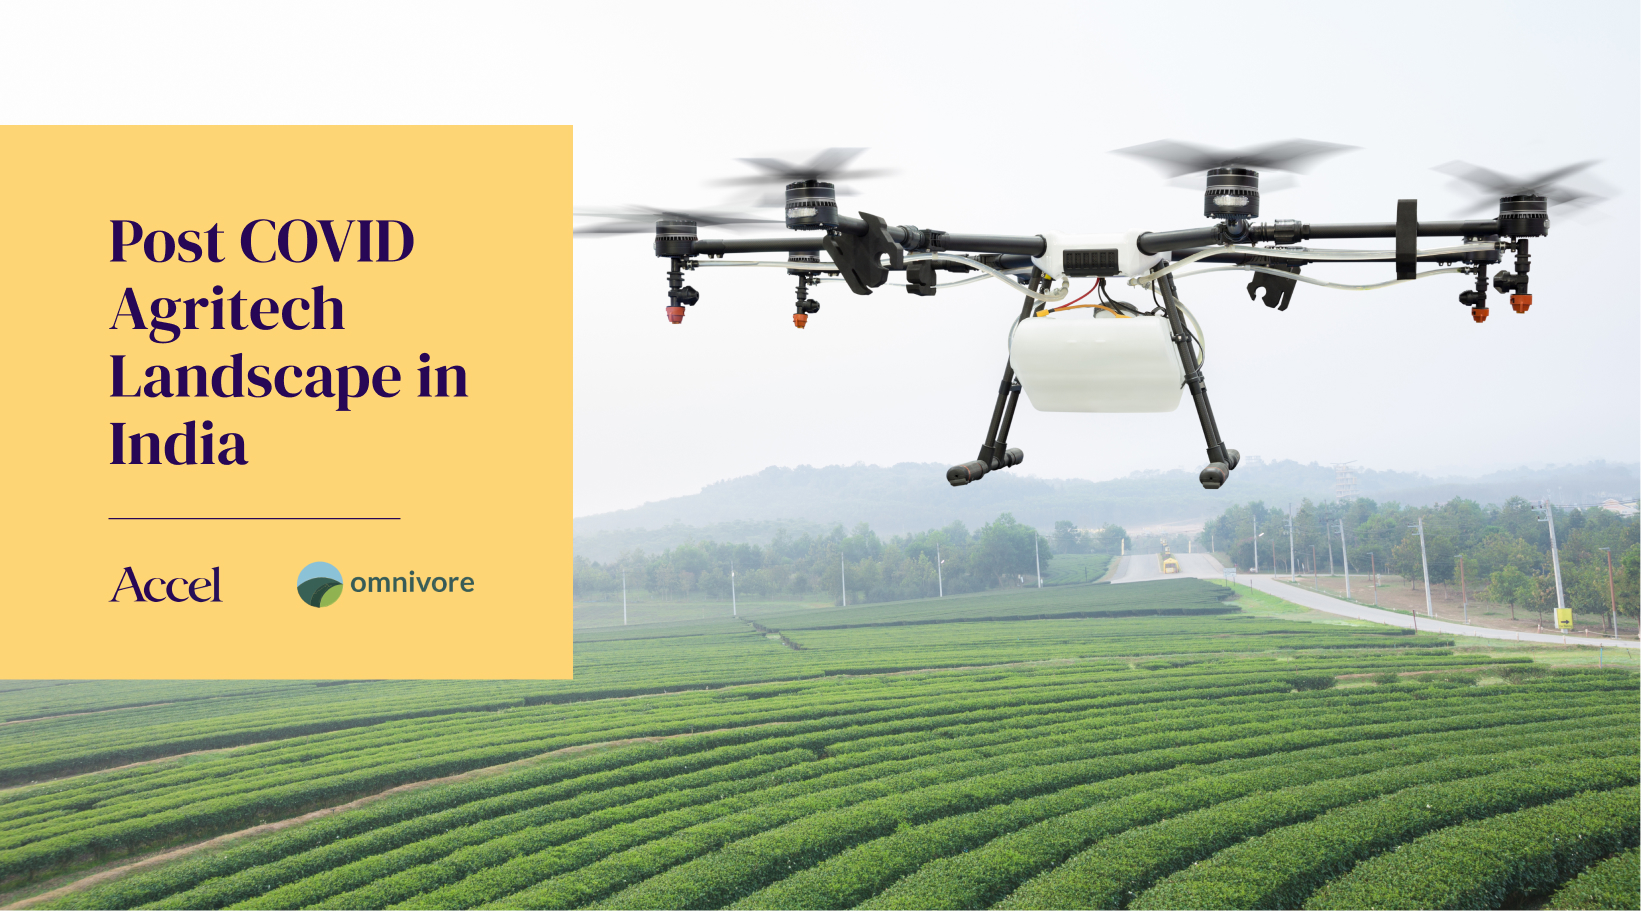 Post-COVID Agritech Landscape in India